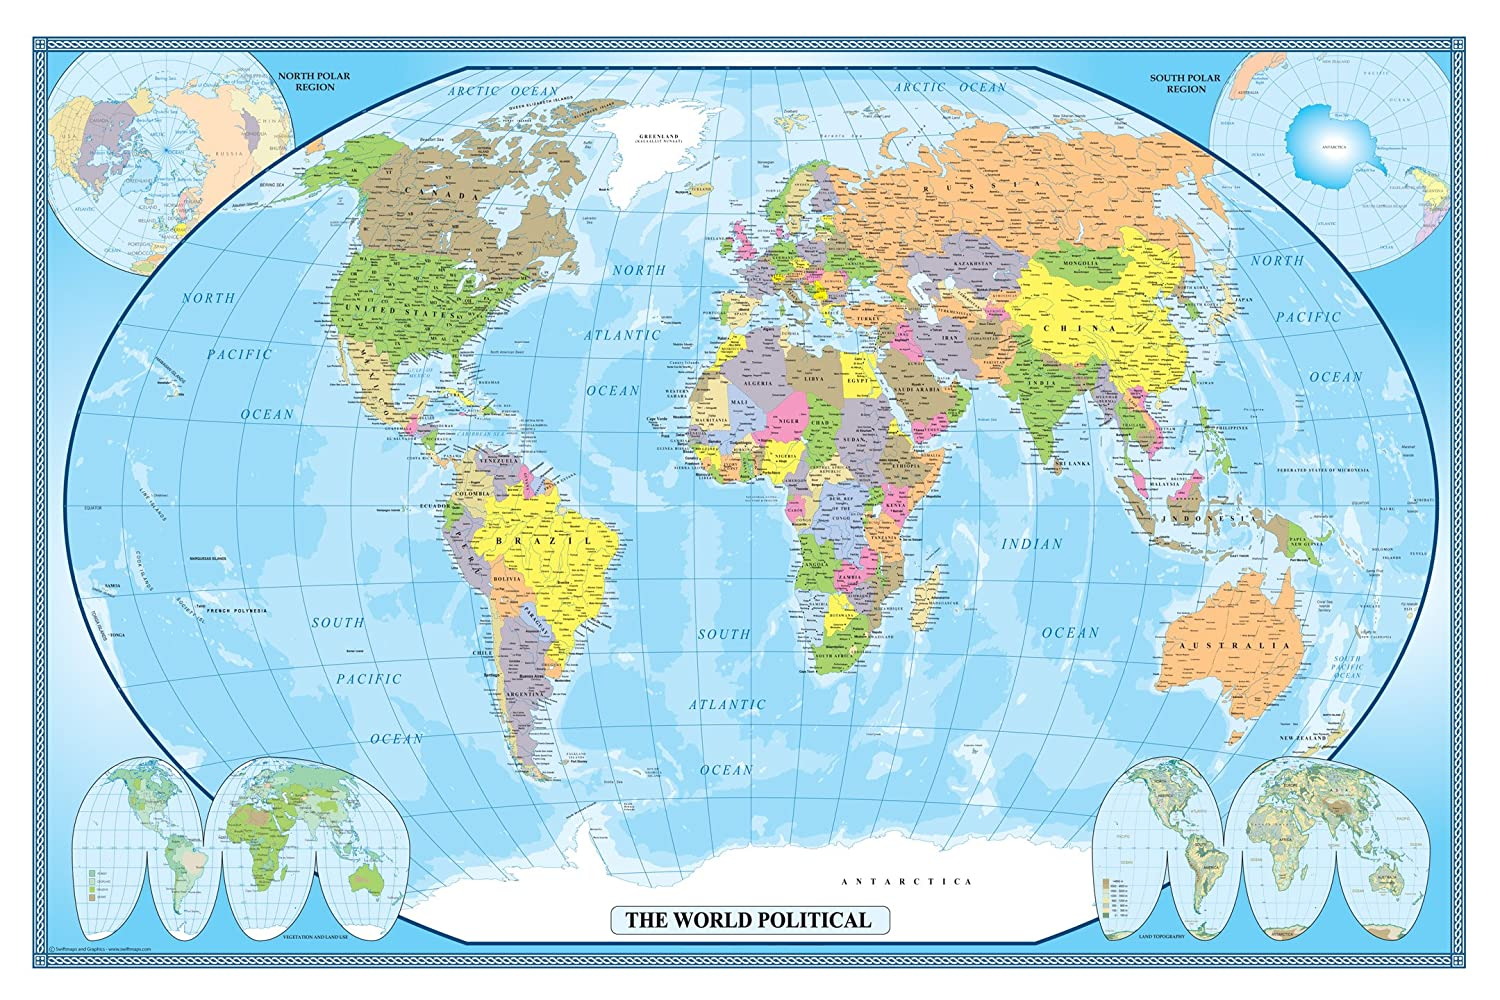 Amazon 24x36 world classic wall map poster paper folded amazon 24x36 world classic wall map poster paper folded office products gumiabroncs Image collections